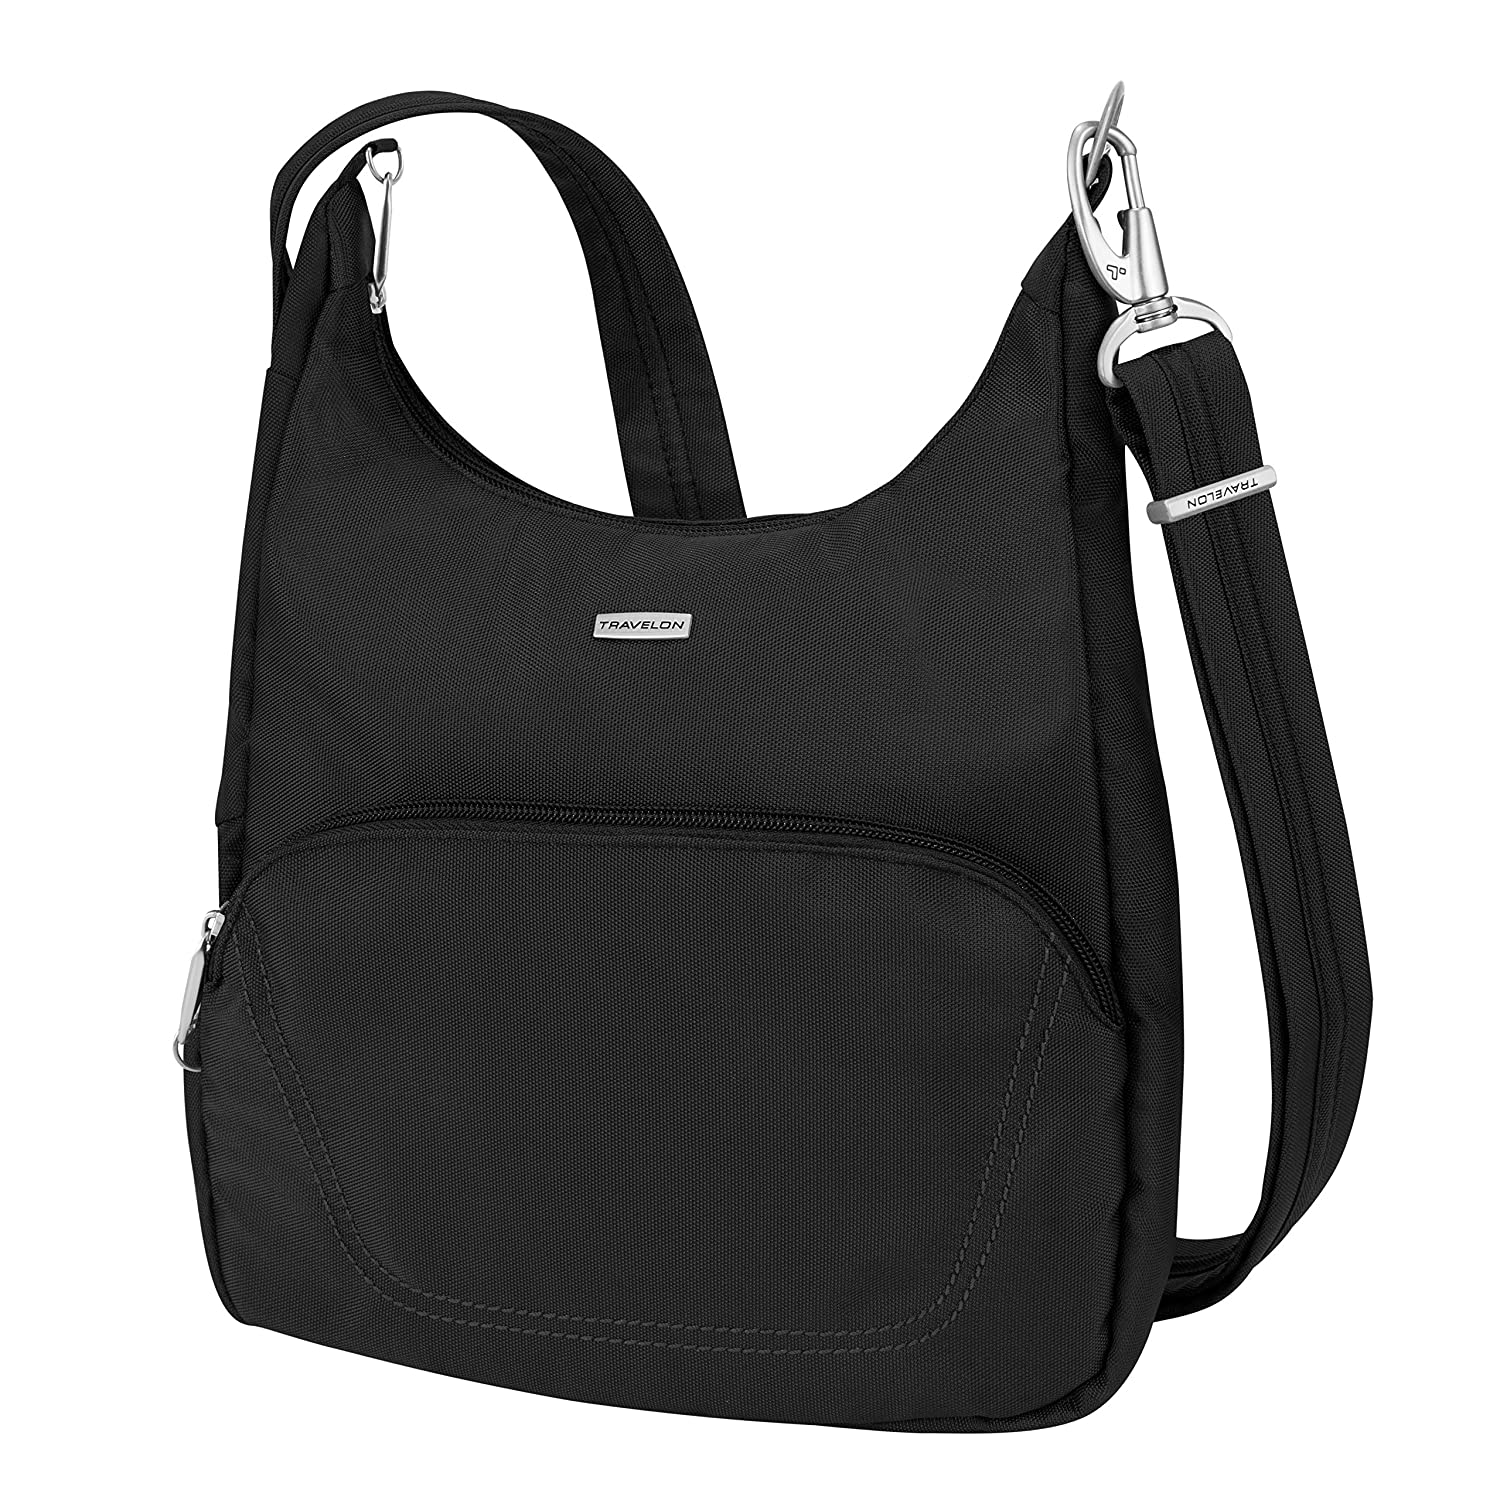 b1e15db2a0c Amazon.com   Travelon Anti-Theft Classic Essential Messenger Bag, Black,  One Size   Messenger Bags